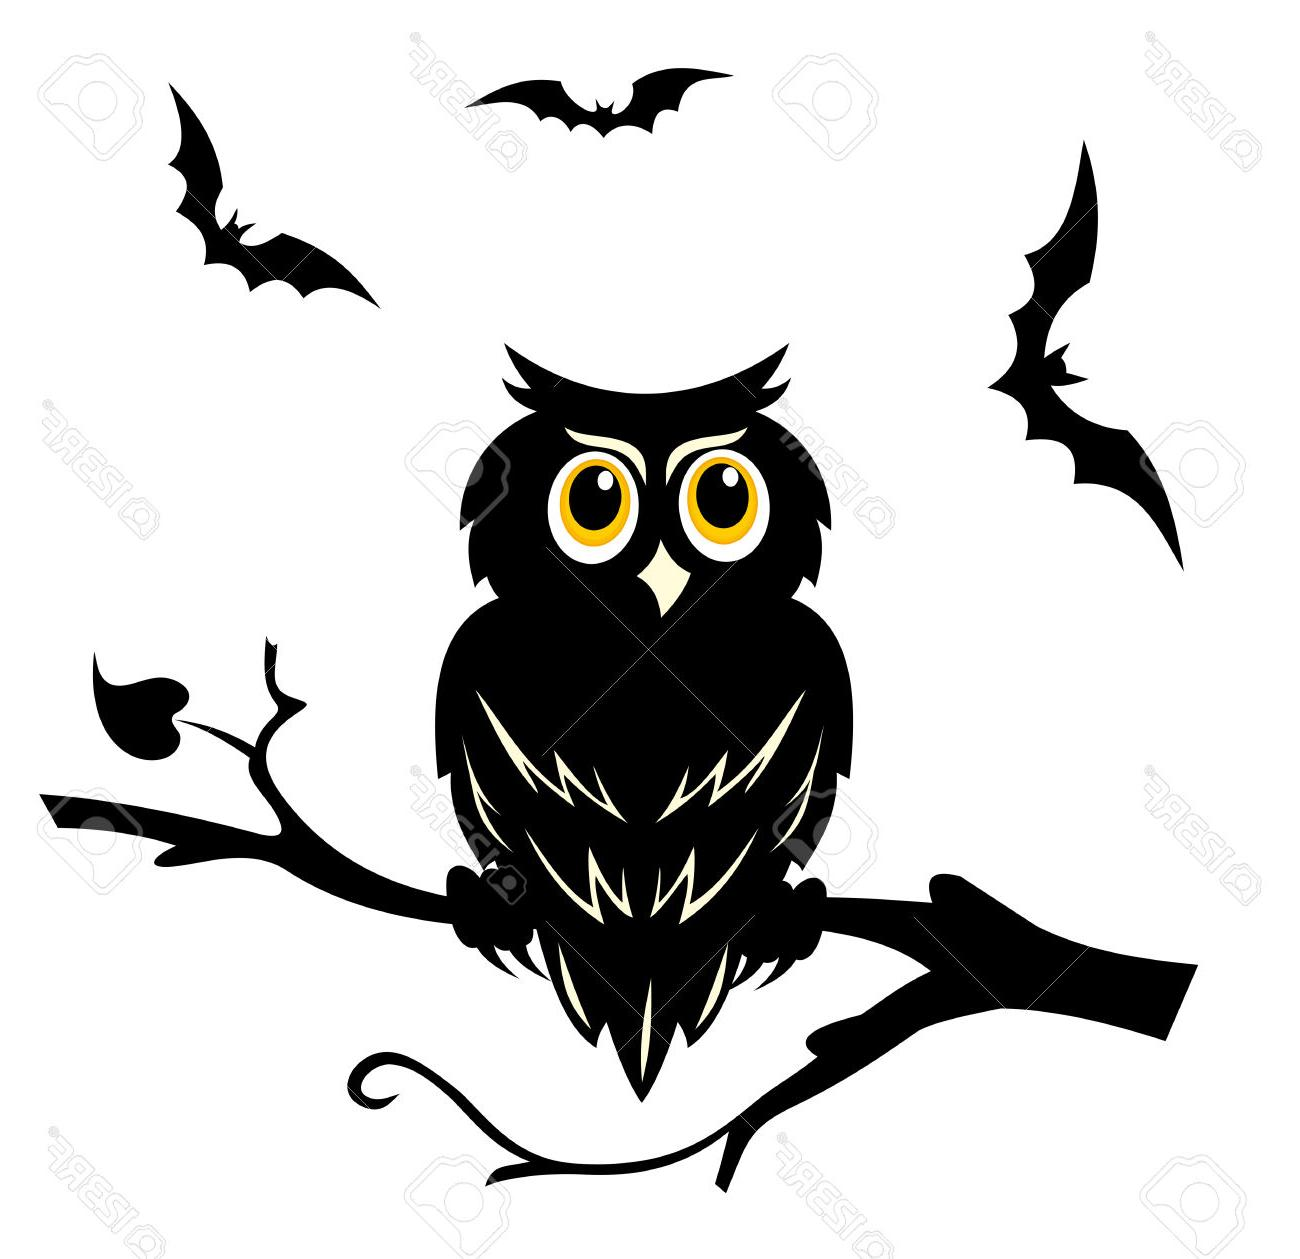 Owl Silhouette | Free download on ClipArtMag